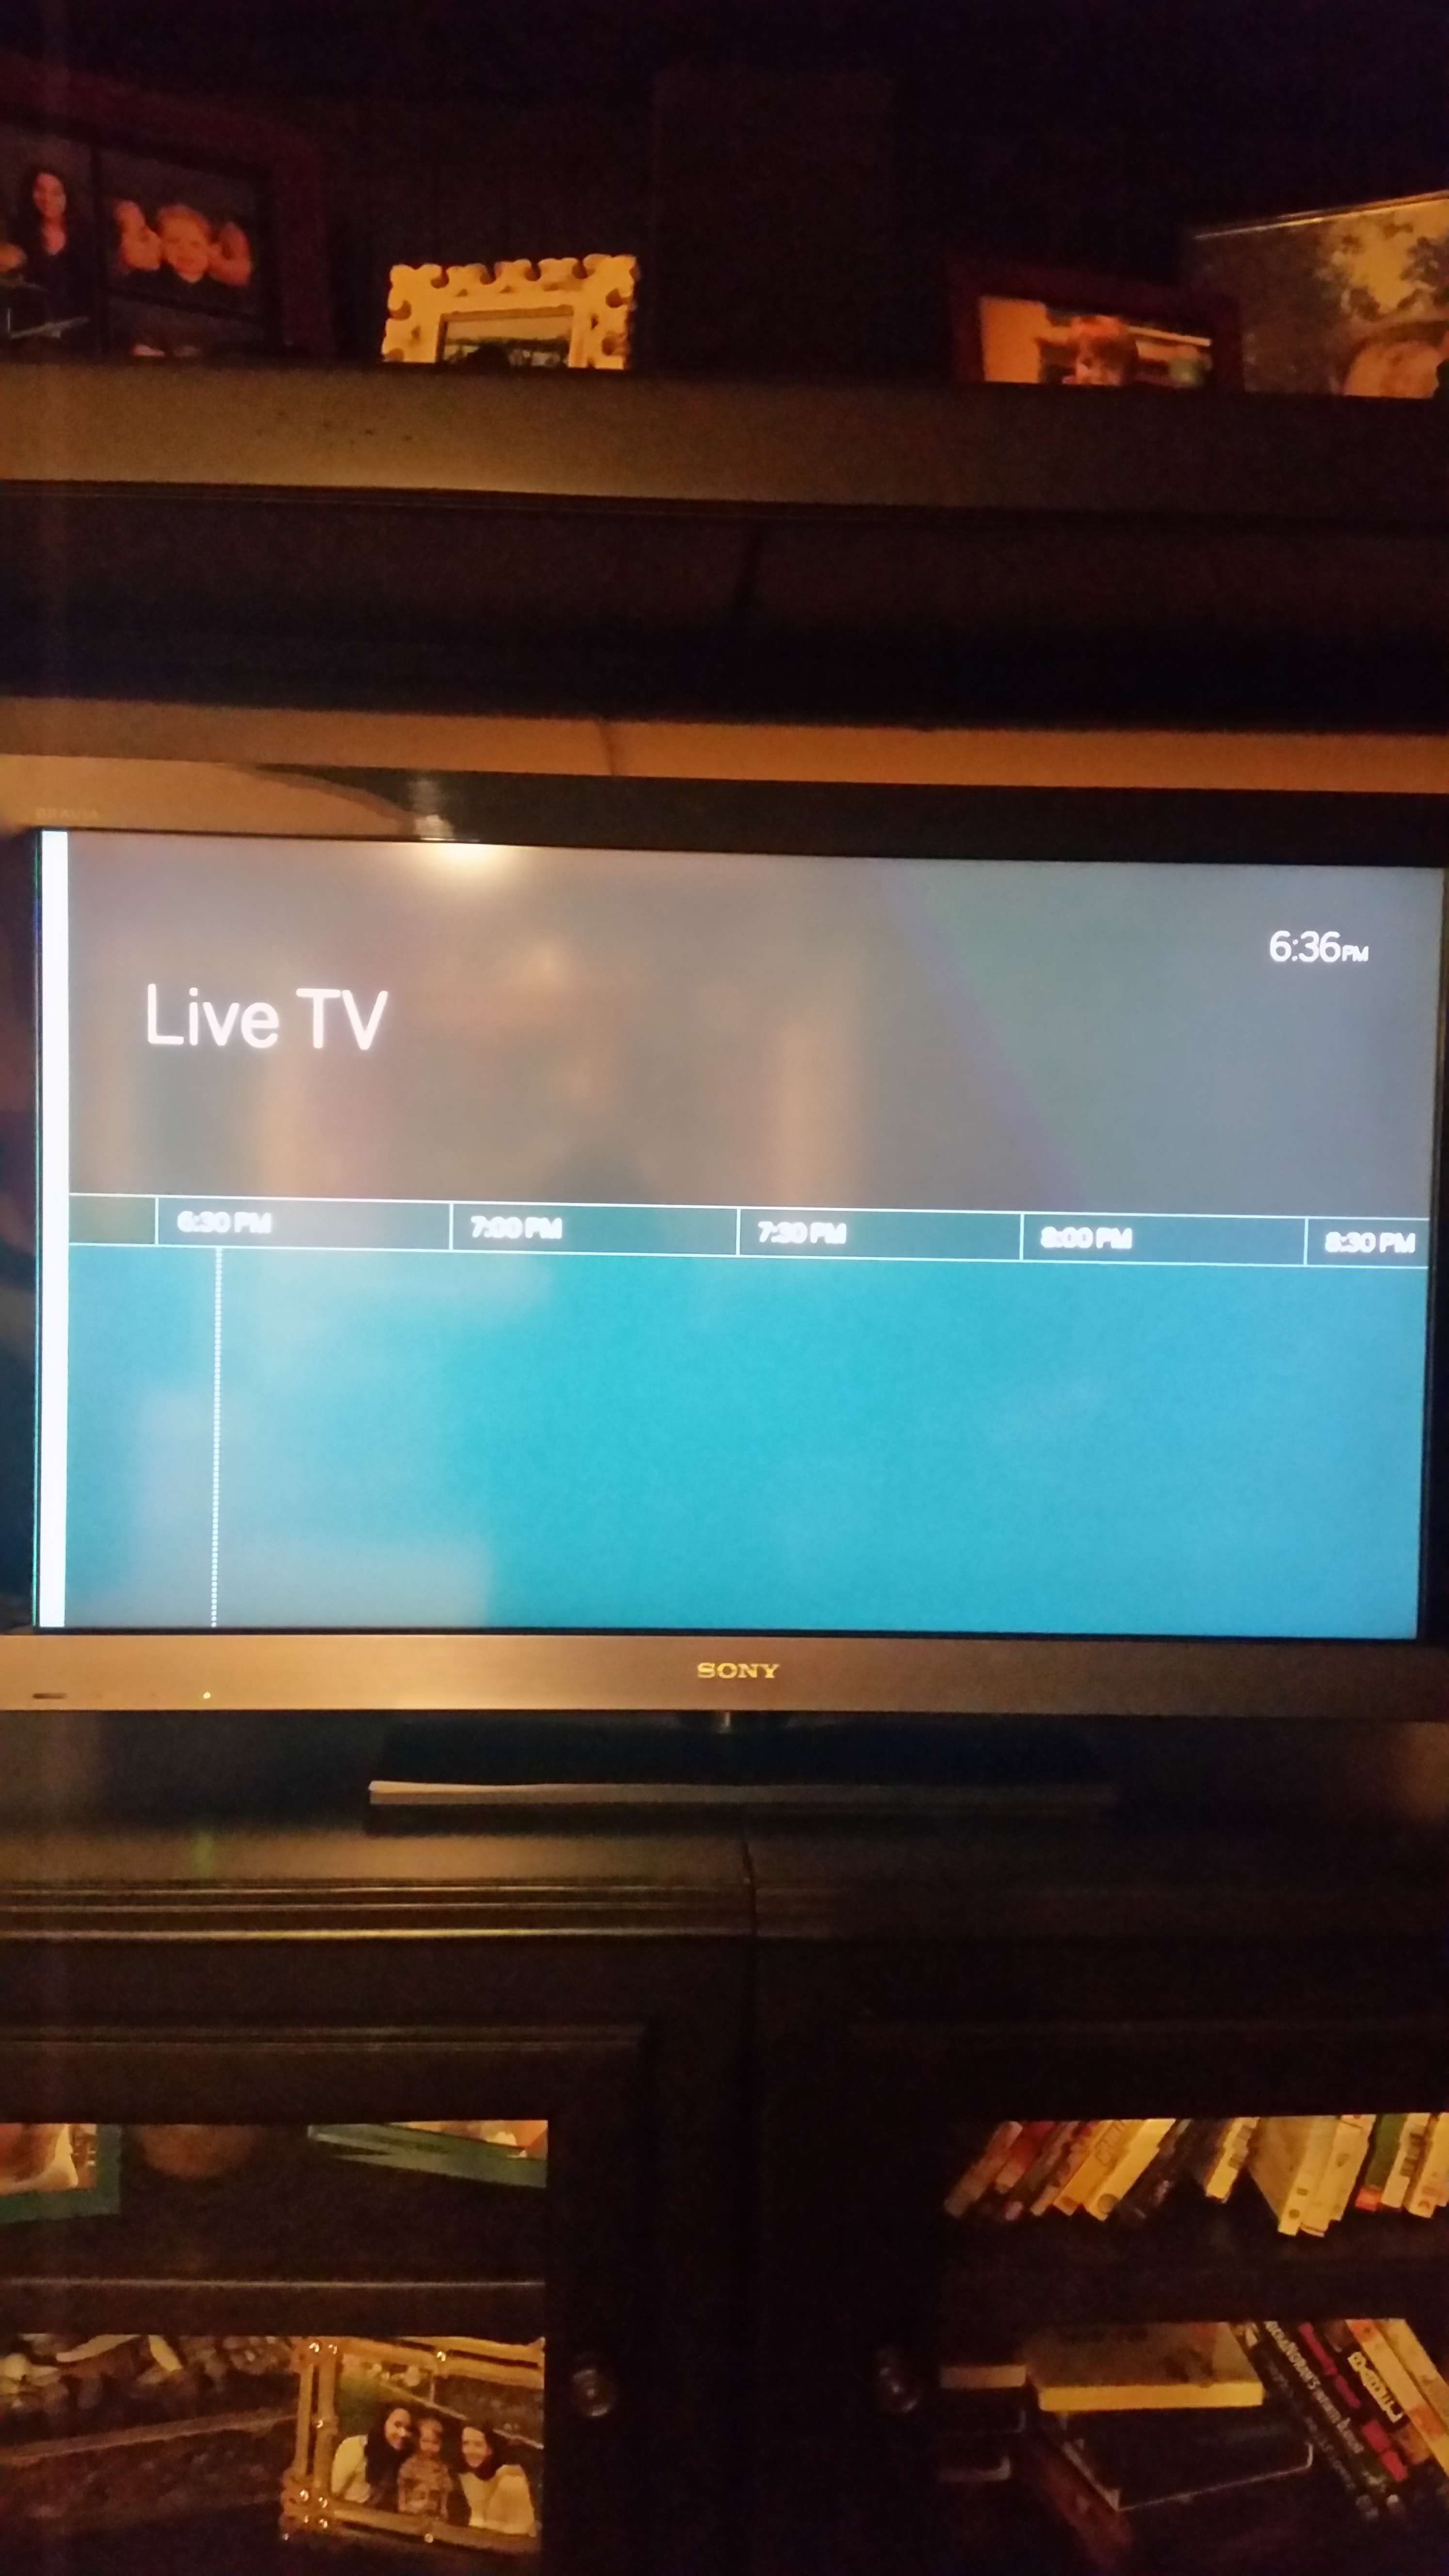 No live tv guide in android app - Support & Troubleshooting